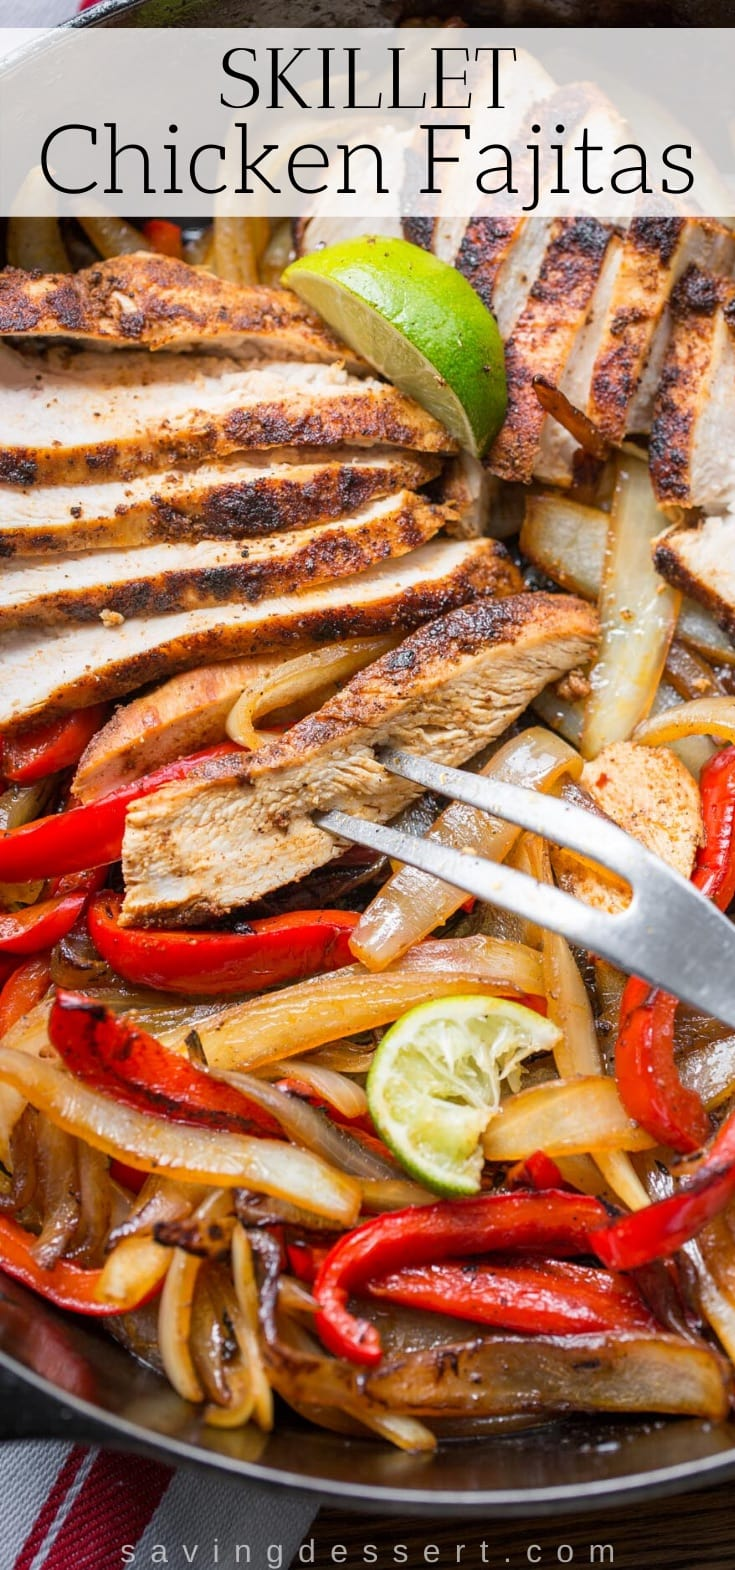 A skillet loaded with sliced chicken fajitas with onions and peppers